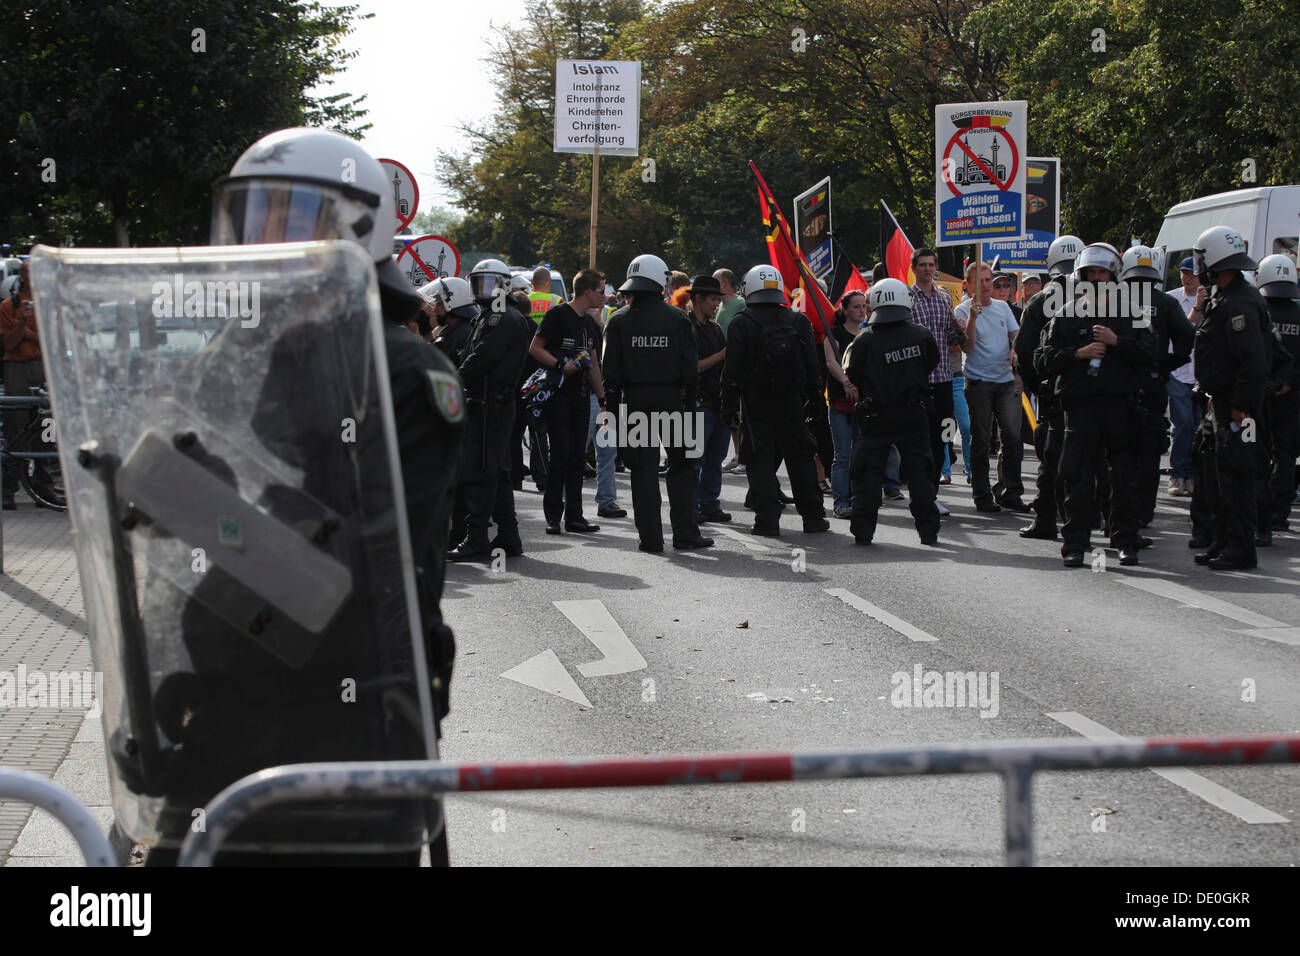 1800 policemen on duty for a demonstration of approximately 60 supporters of the anti-Islamic minor political party Pro - Stock Image